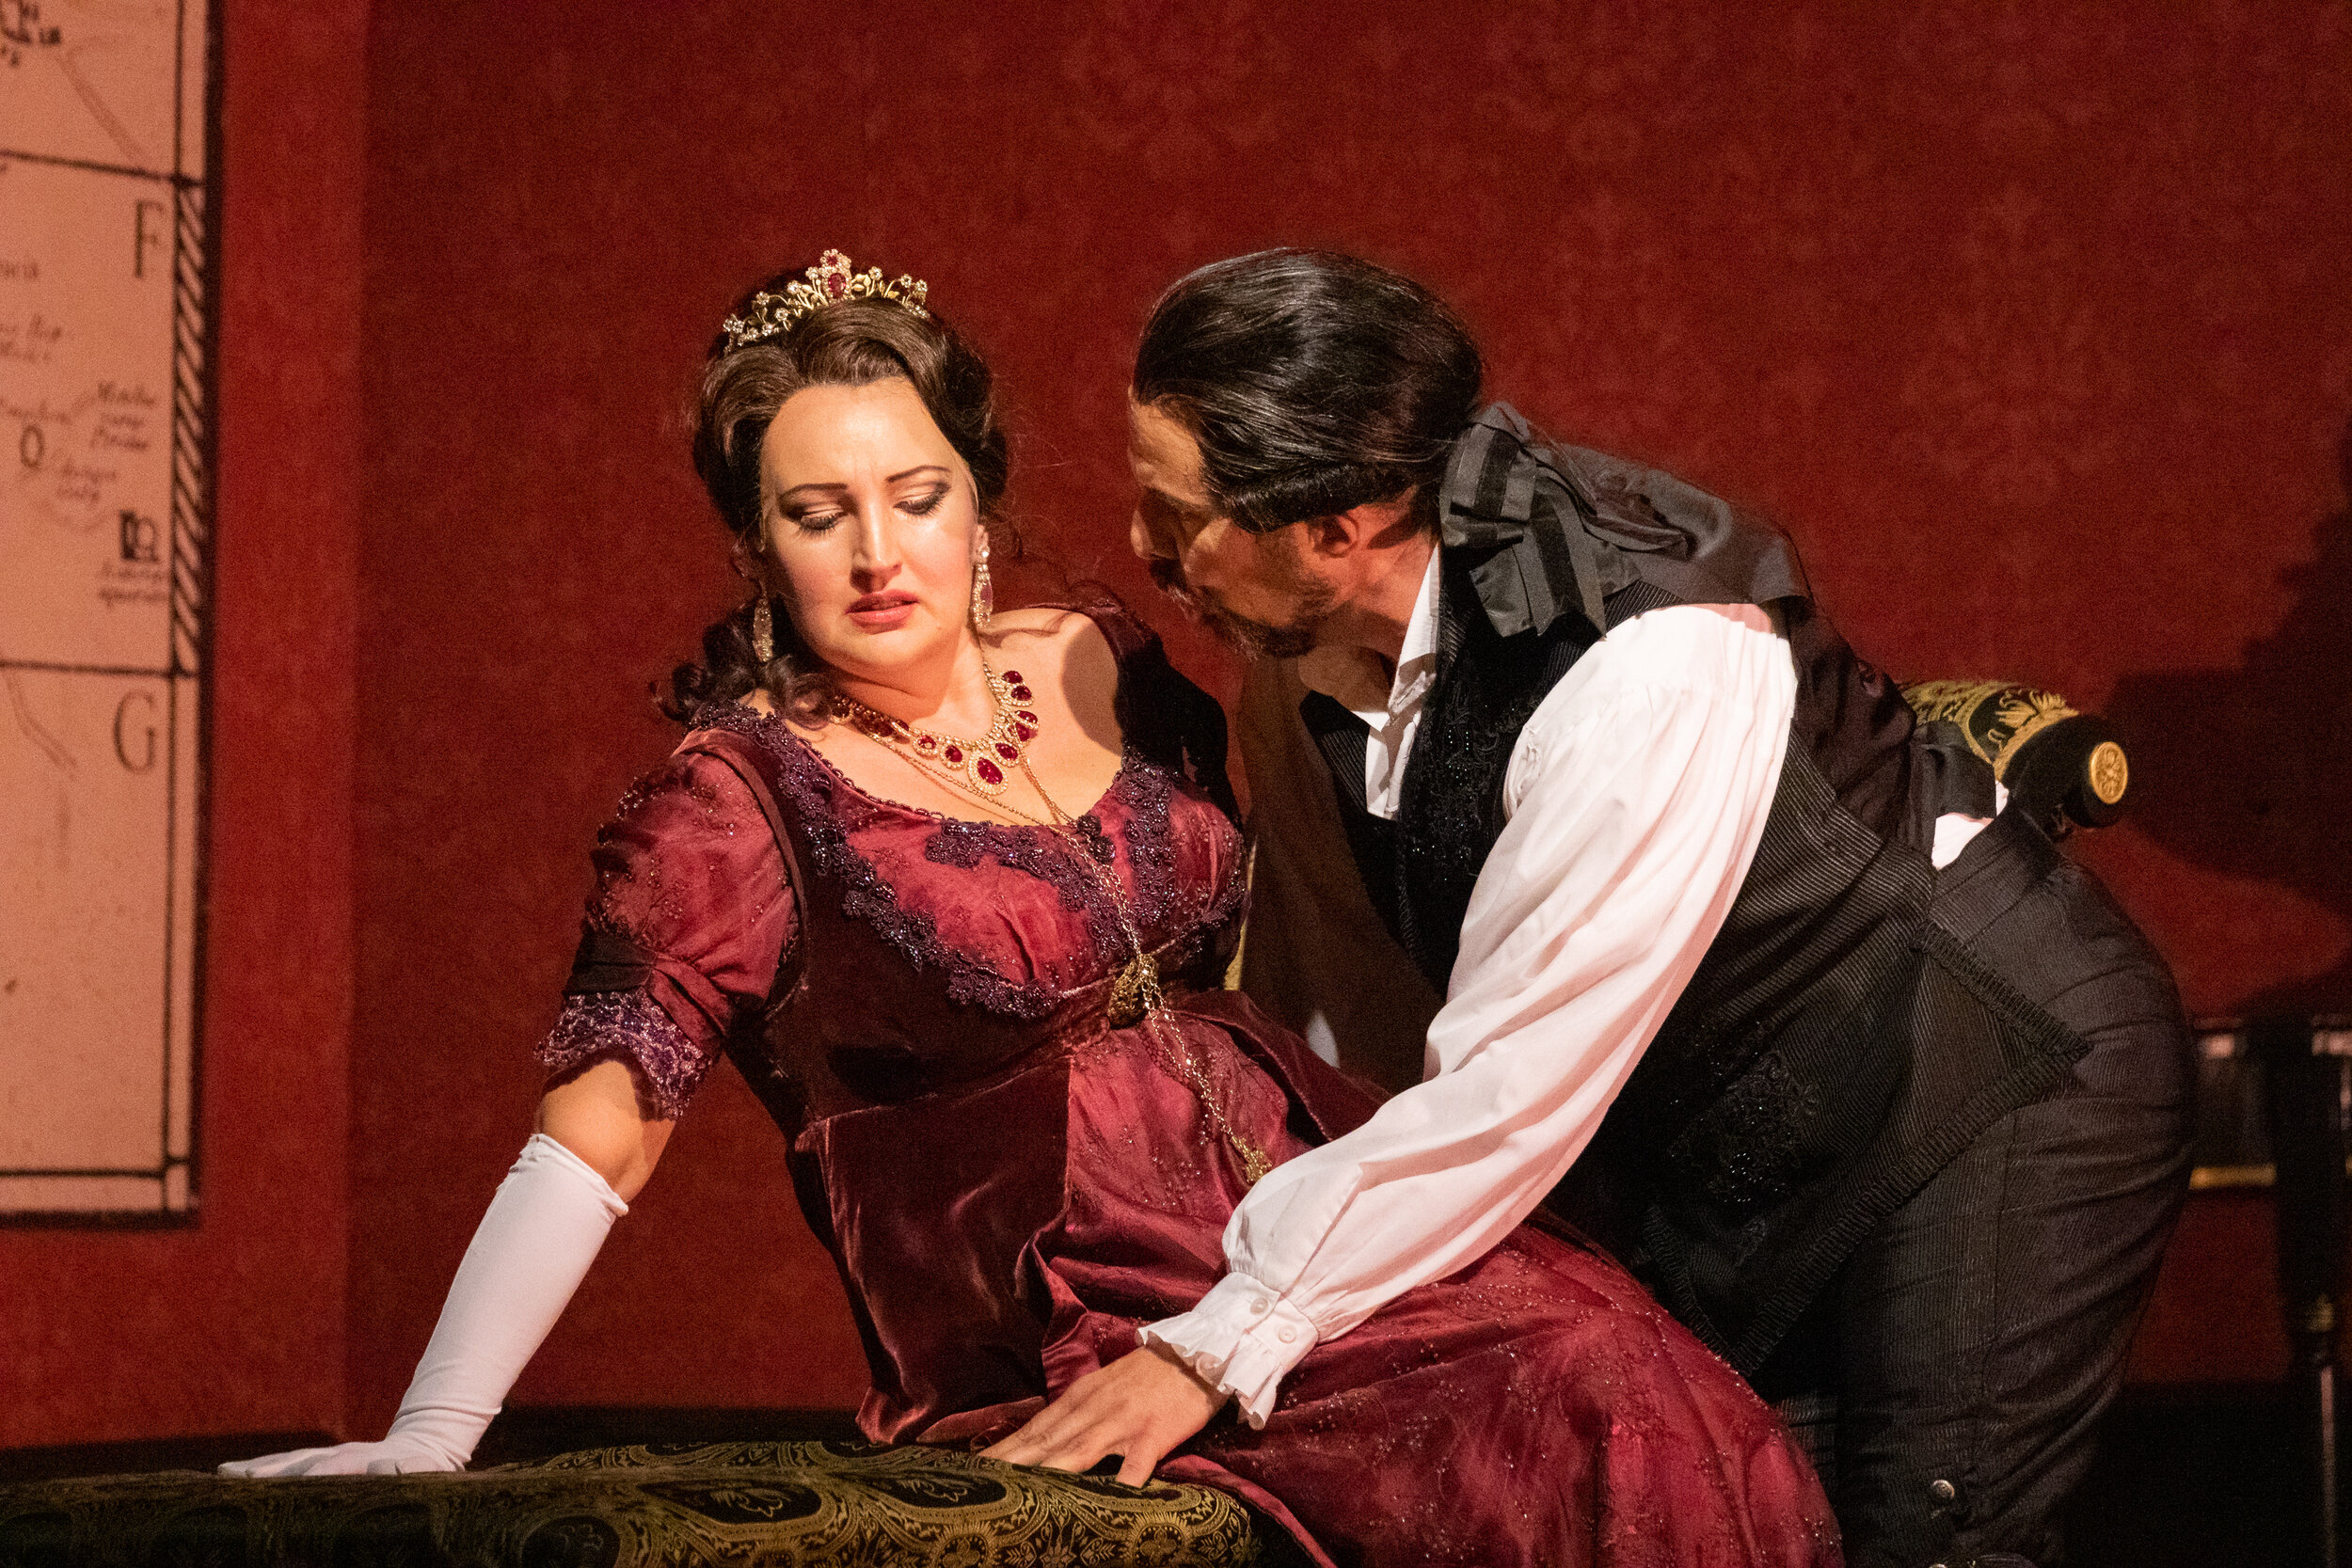 Ewa Płonka as Tosca and Kyle Albertson as Scarpia. Photo by Ben Schill Photography; courtesy of Virginia Opera.